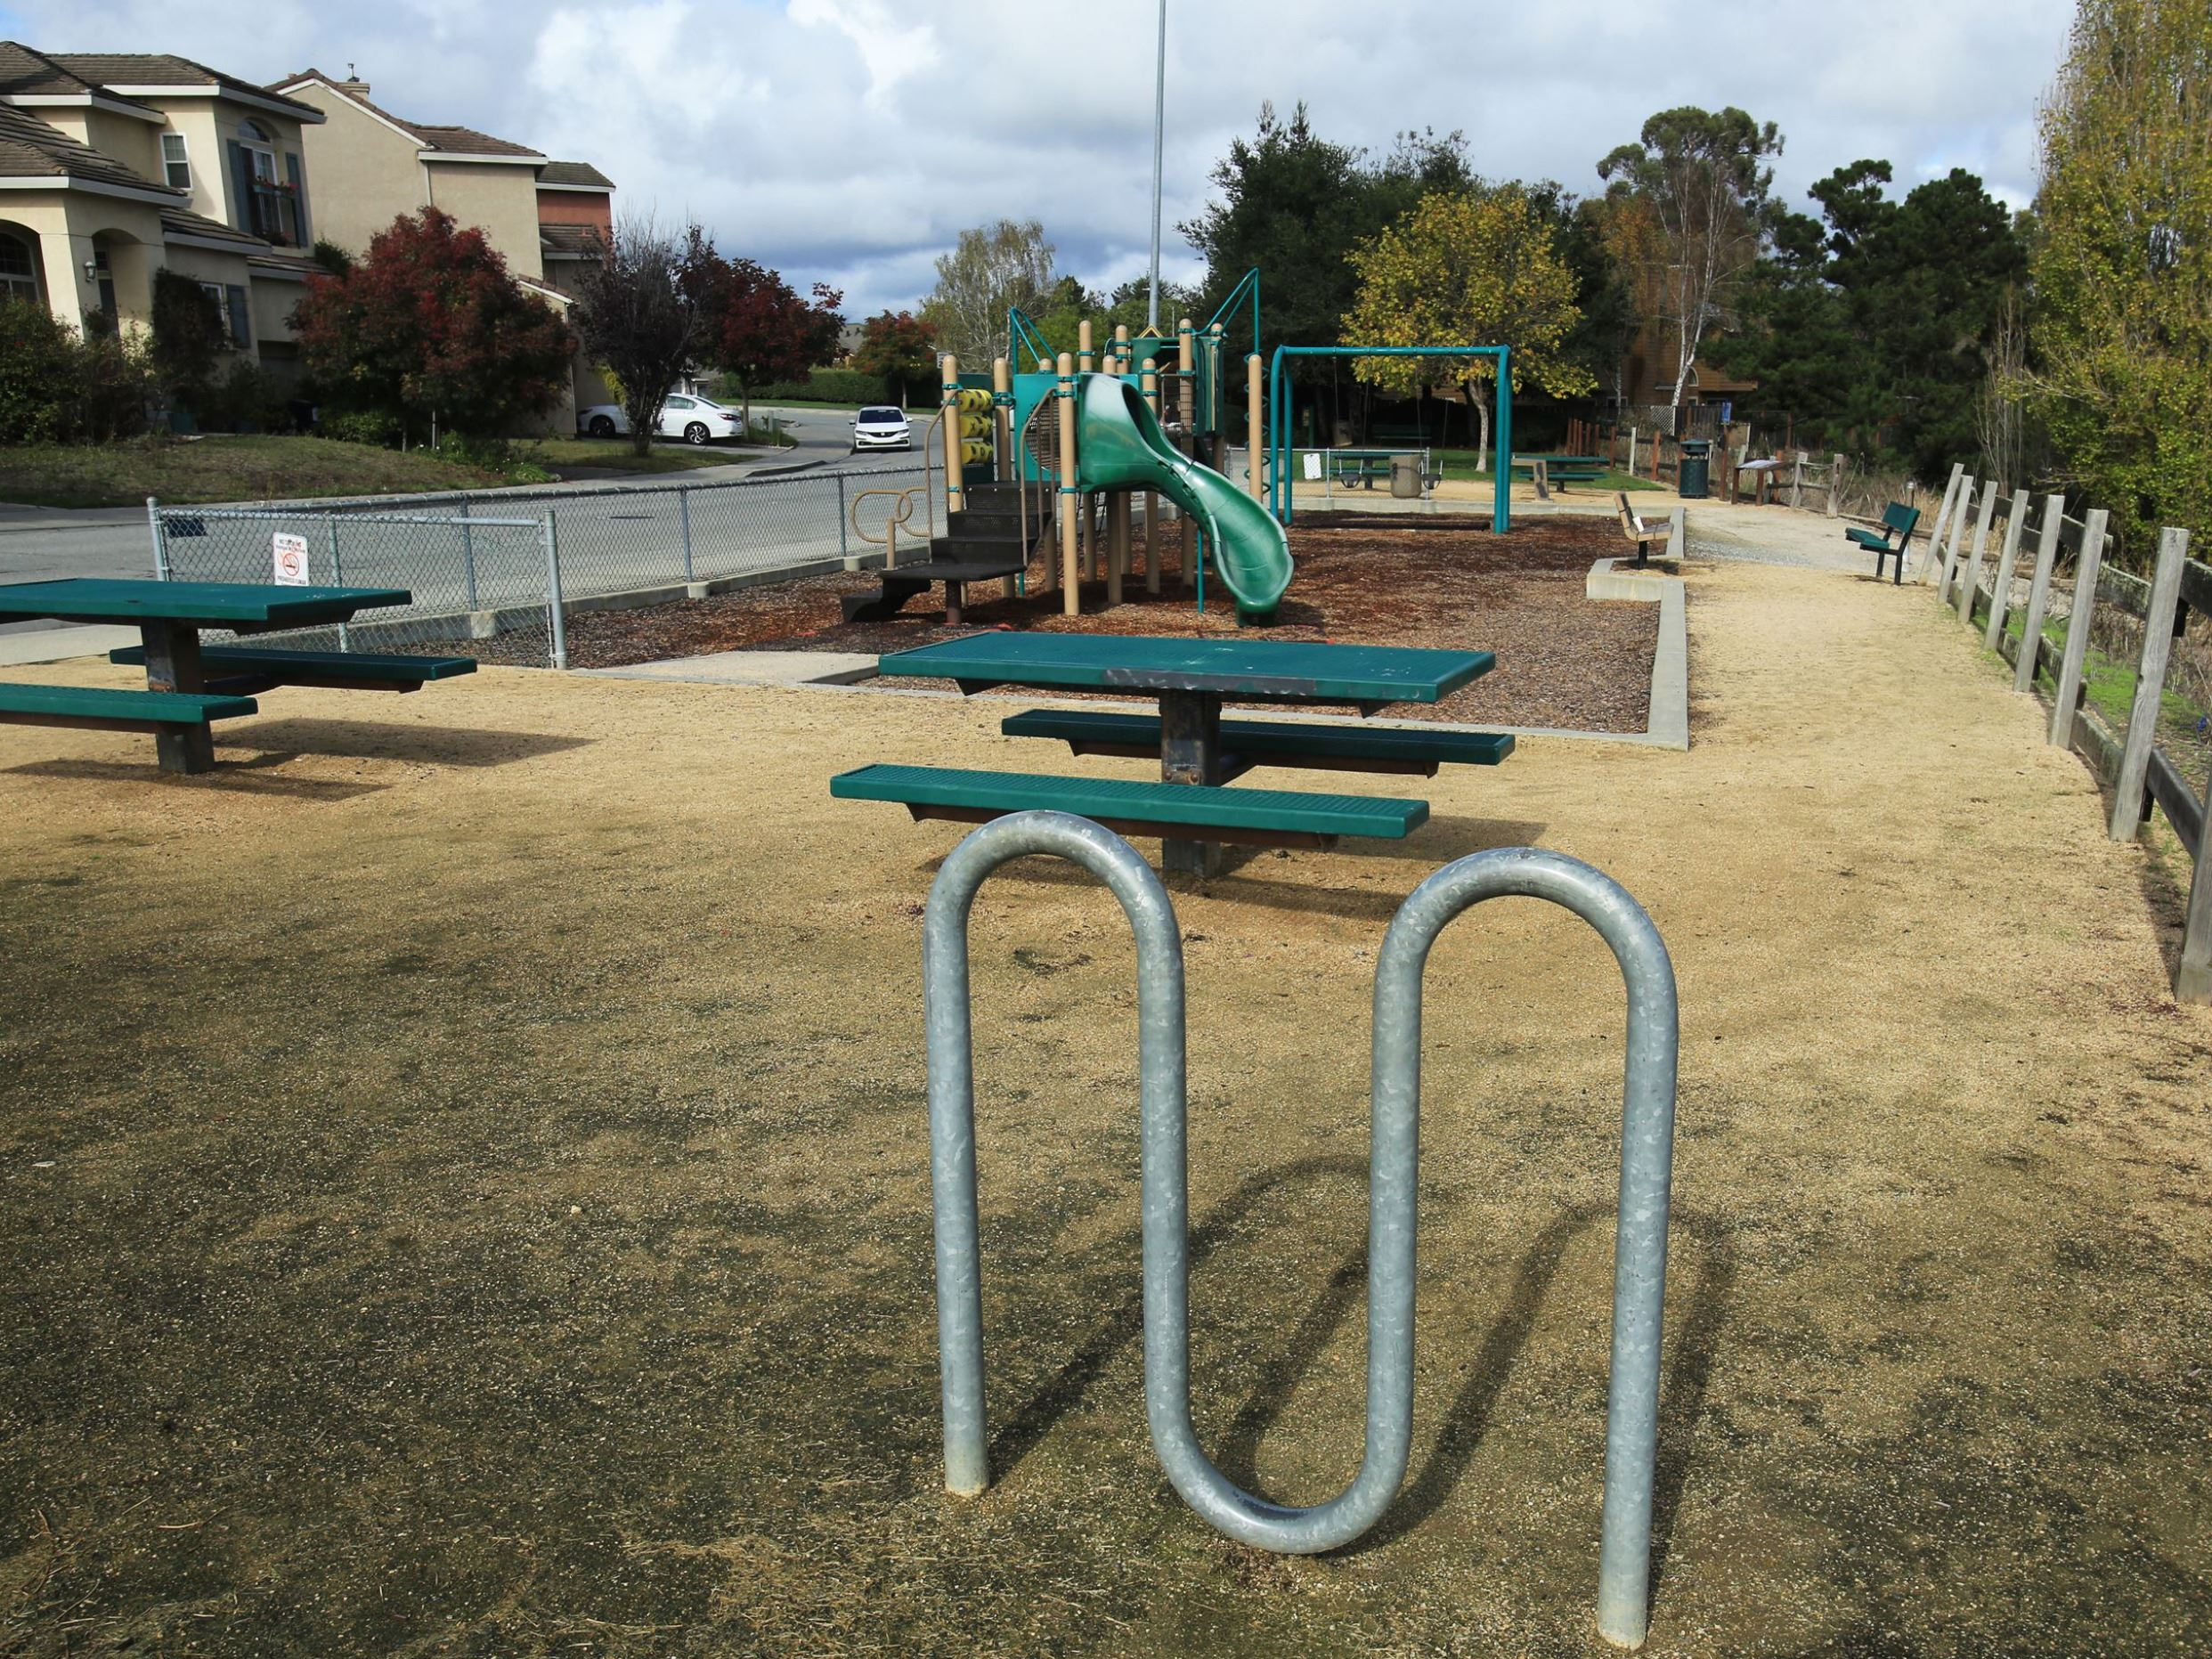 Playground and picnic tables at Hope park